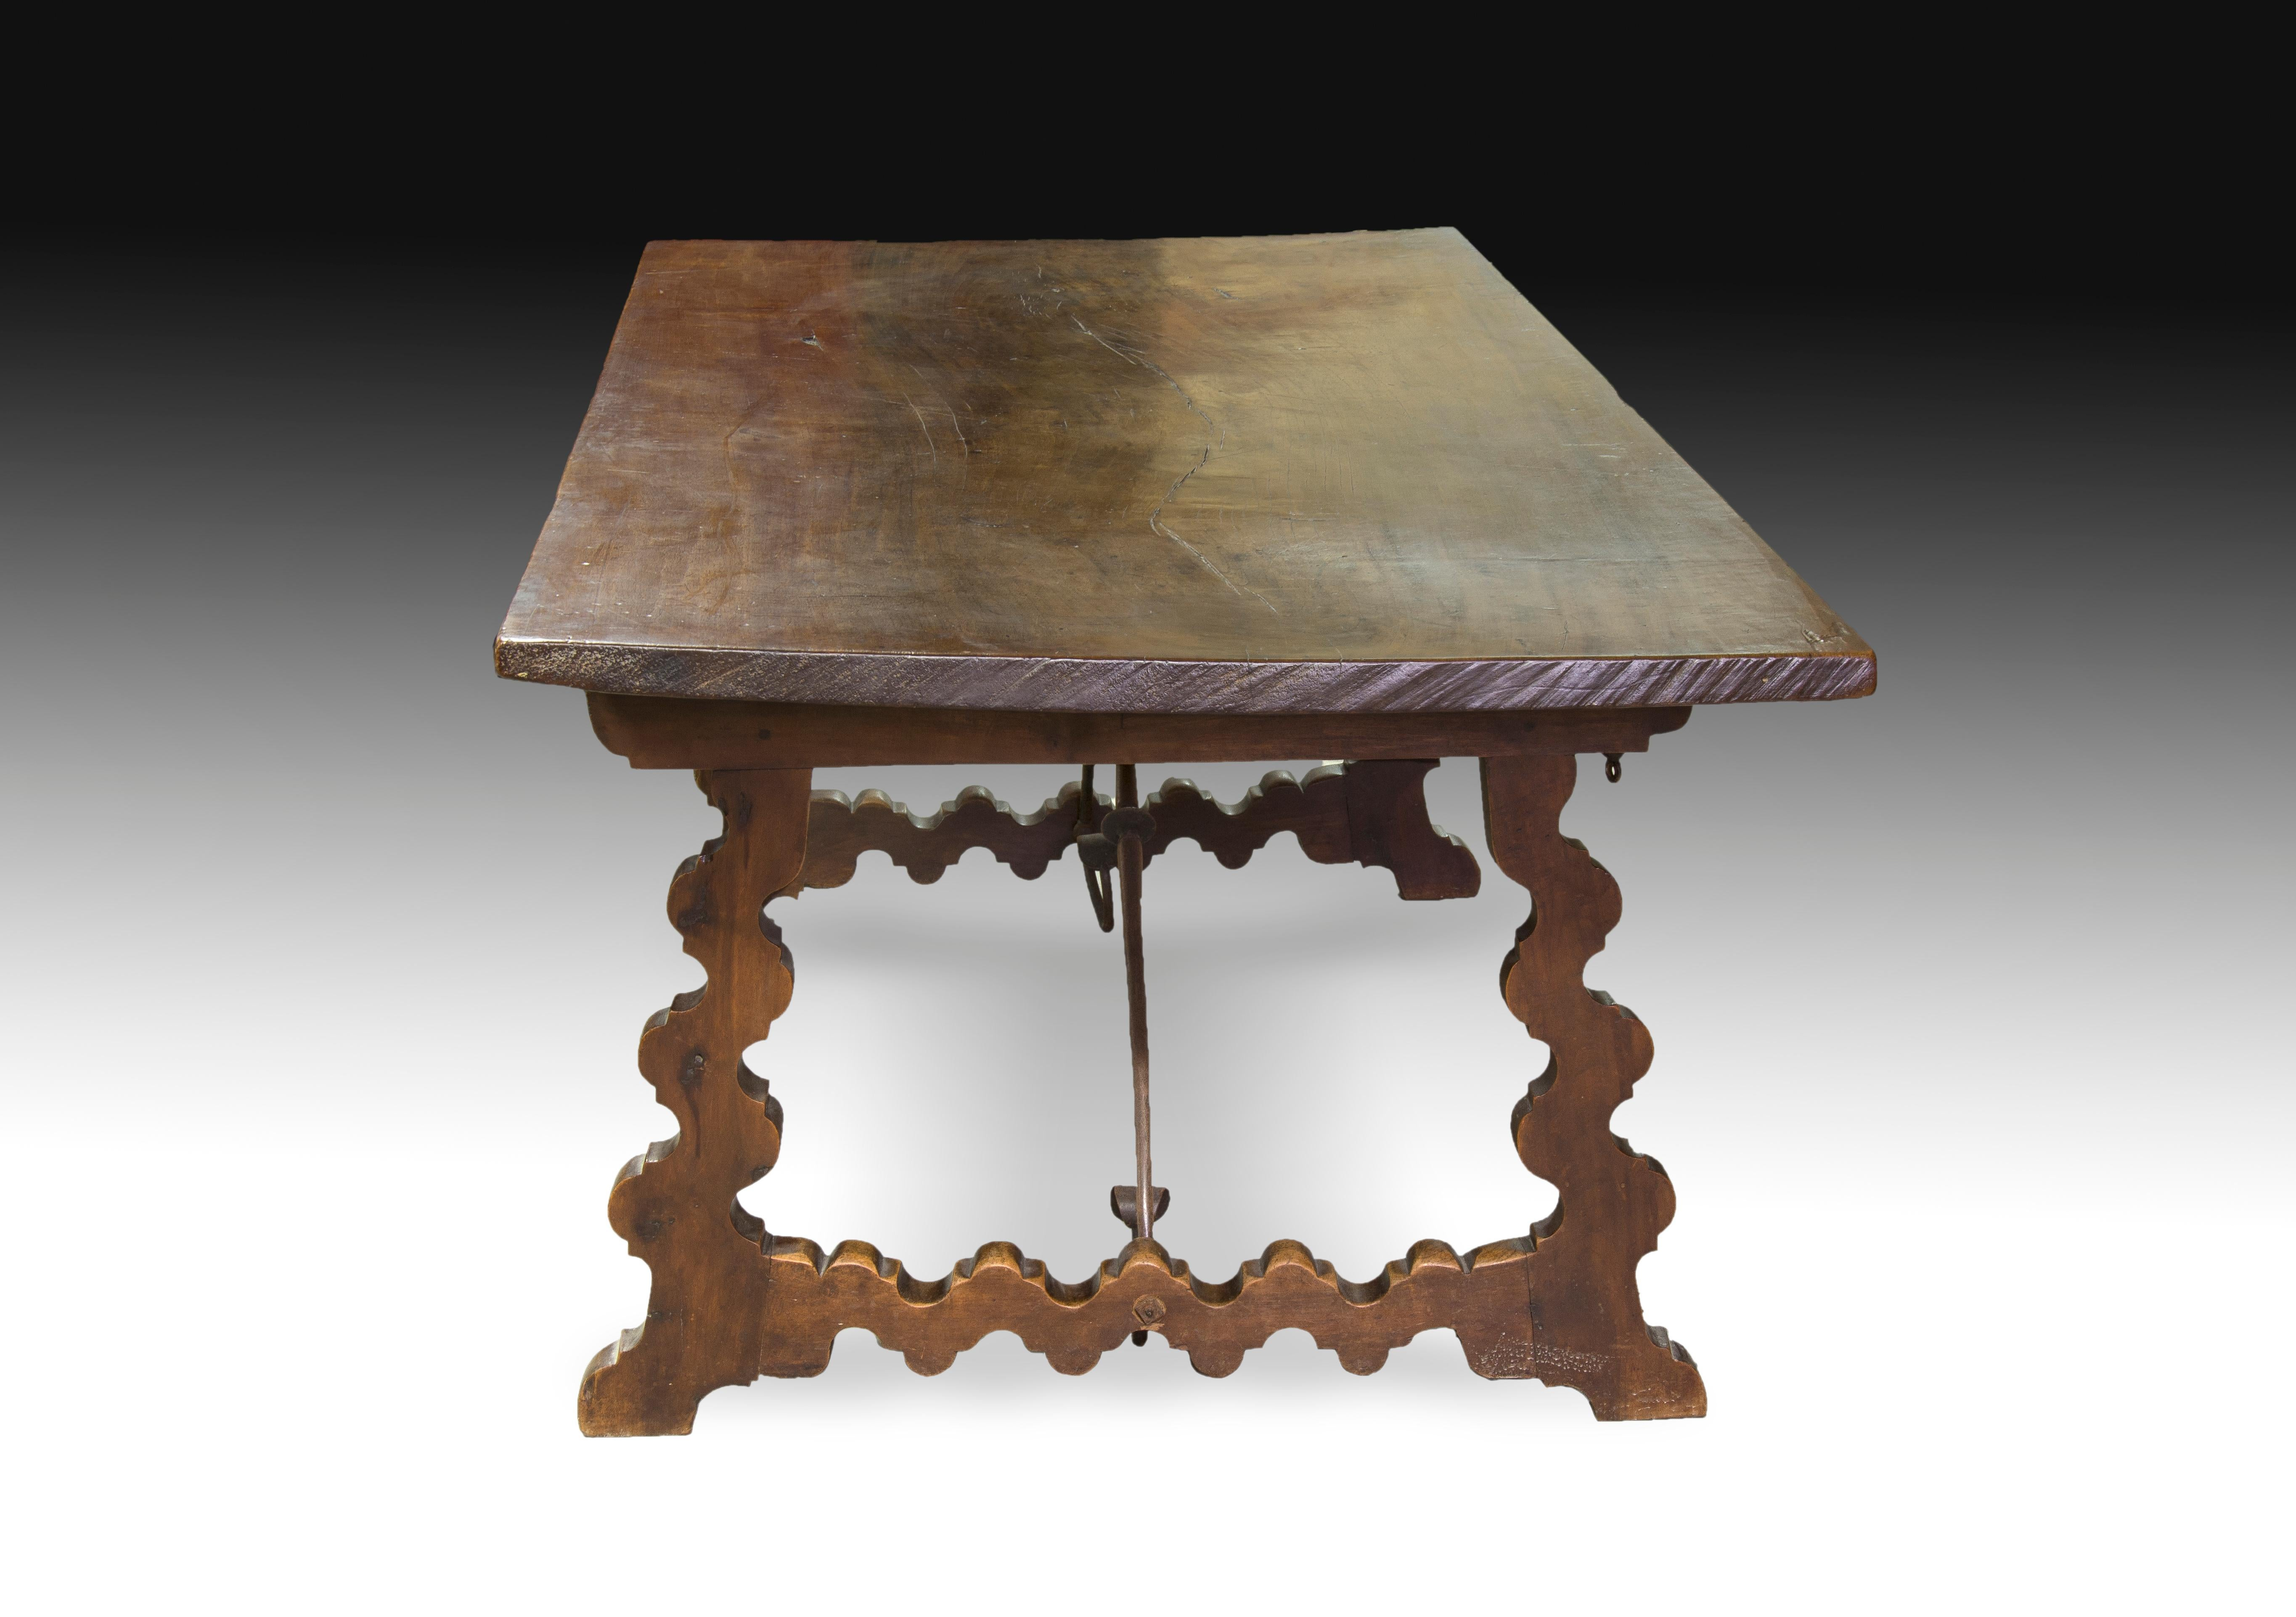 Baroque Walnut U201cLyre Legsu201d Table With Wrought Iron Fasteners, Spain,  Castille For